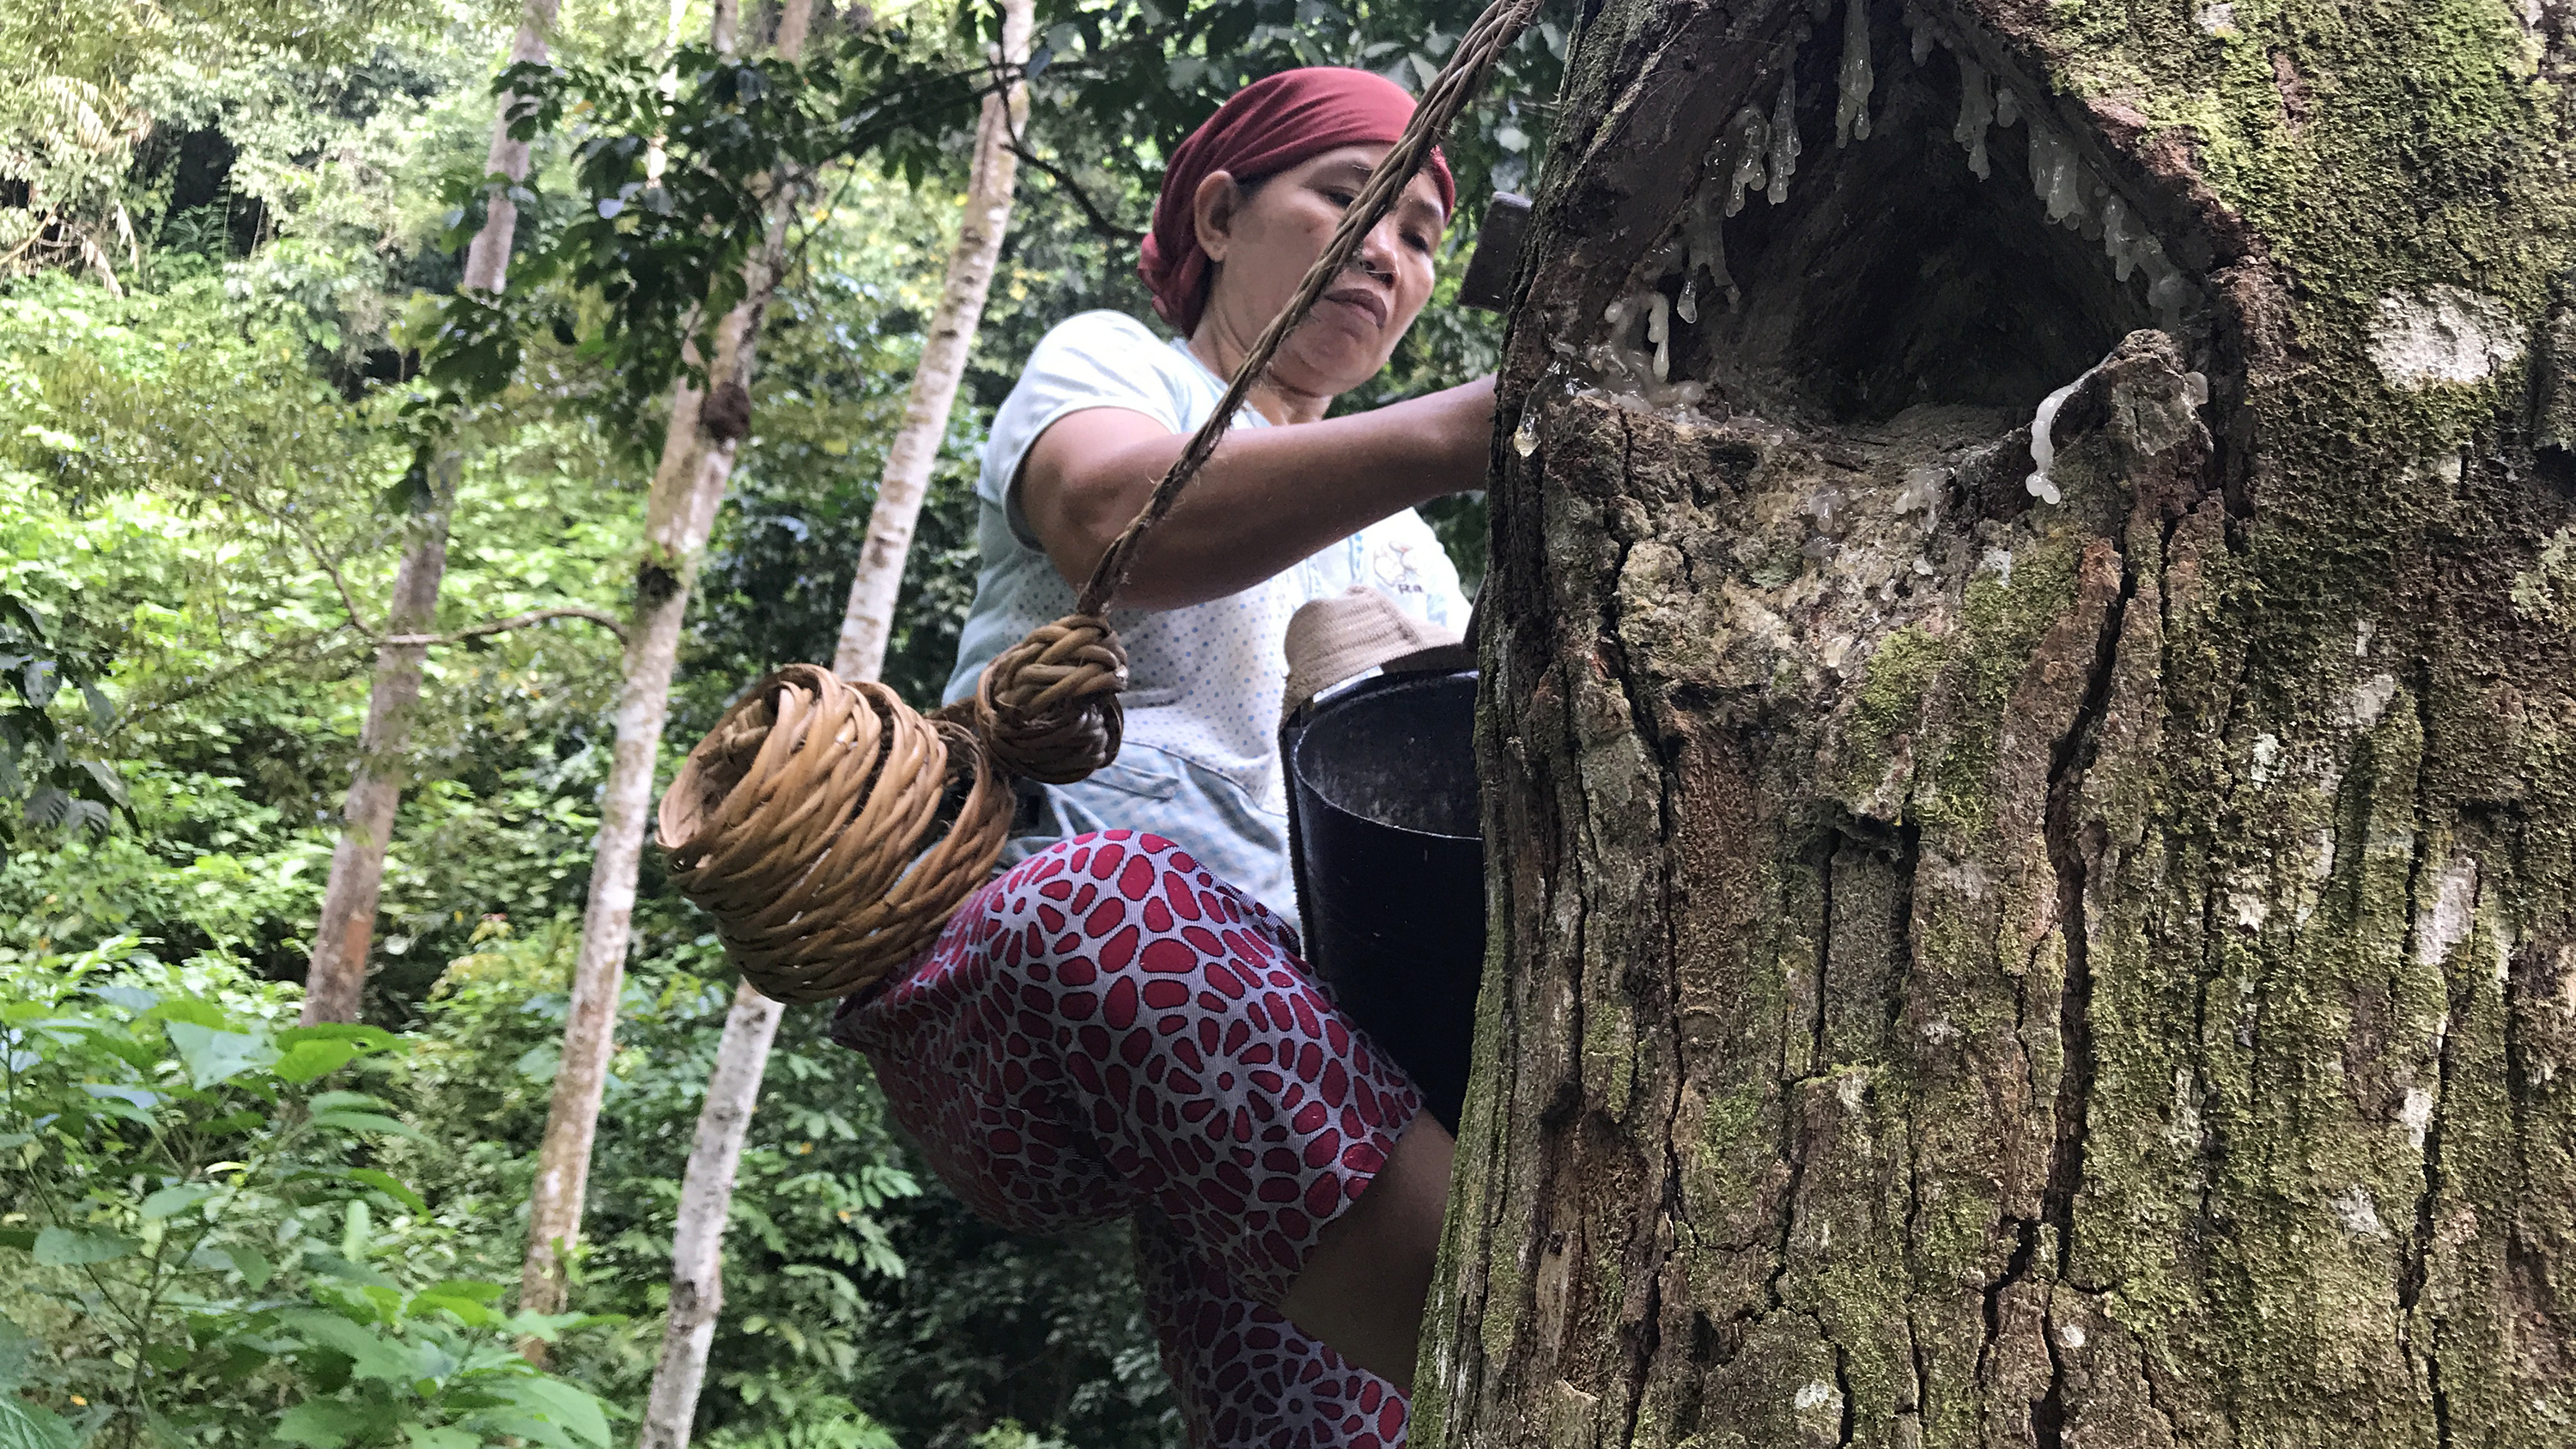 """In the forests near the southern Sumatran village of Krui, 48-year-old Marhana climbs up the trees to harvest damar, a resin used in paints and varnishes. These damar trees are part of something called an """"agroforest,"""" which experts see as a way to prevent deforestation and conversion of forests into palm oil plantations."""